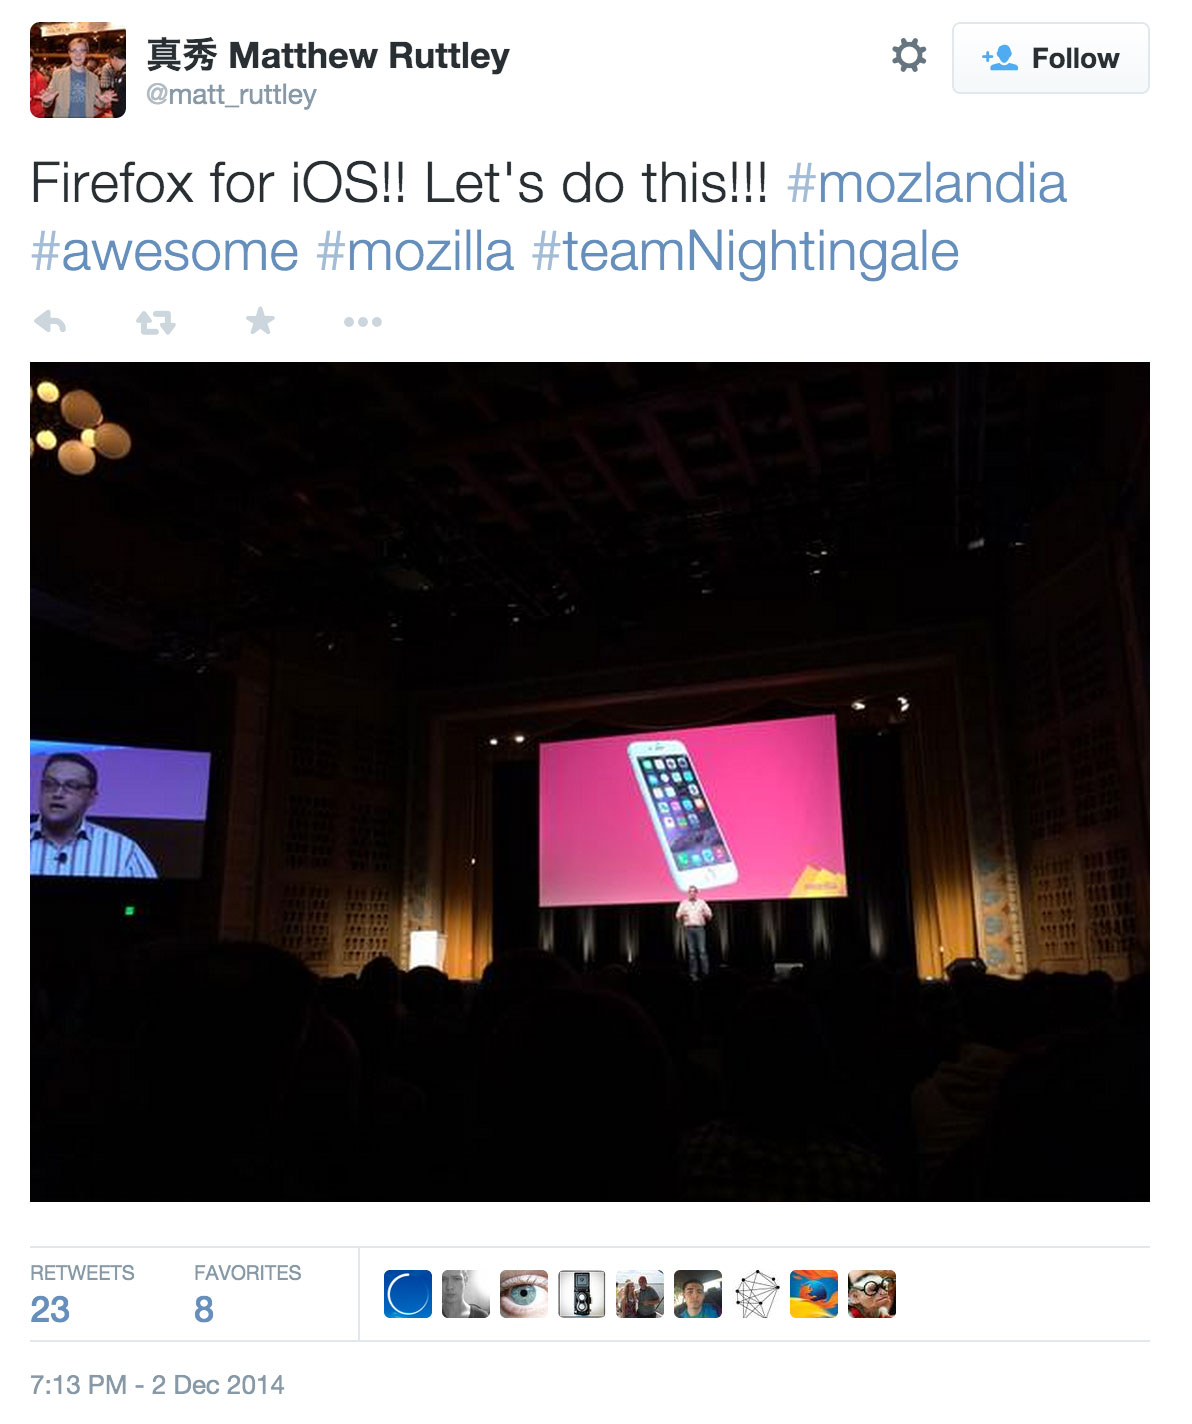 This tweet shows Johnathan Nightingale, vice president of Firefox at Mozilla, stands in front of a photo of an iPhone at Mozilla's Mozlandia event.